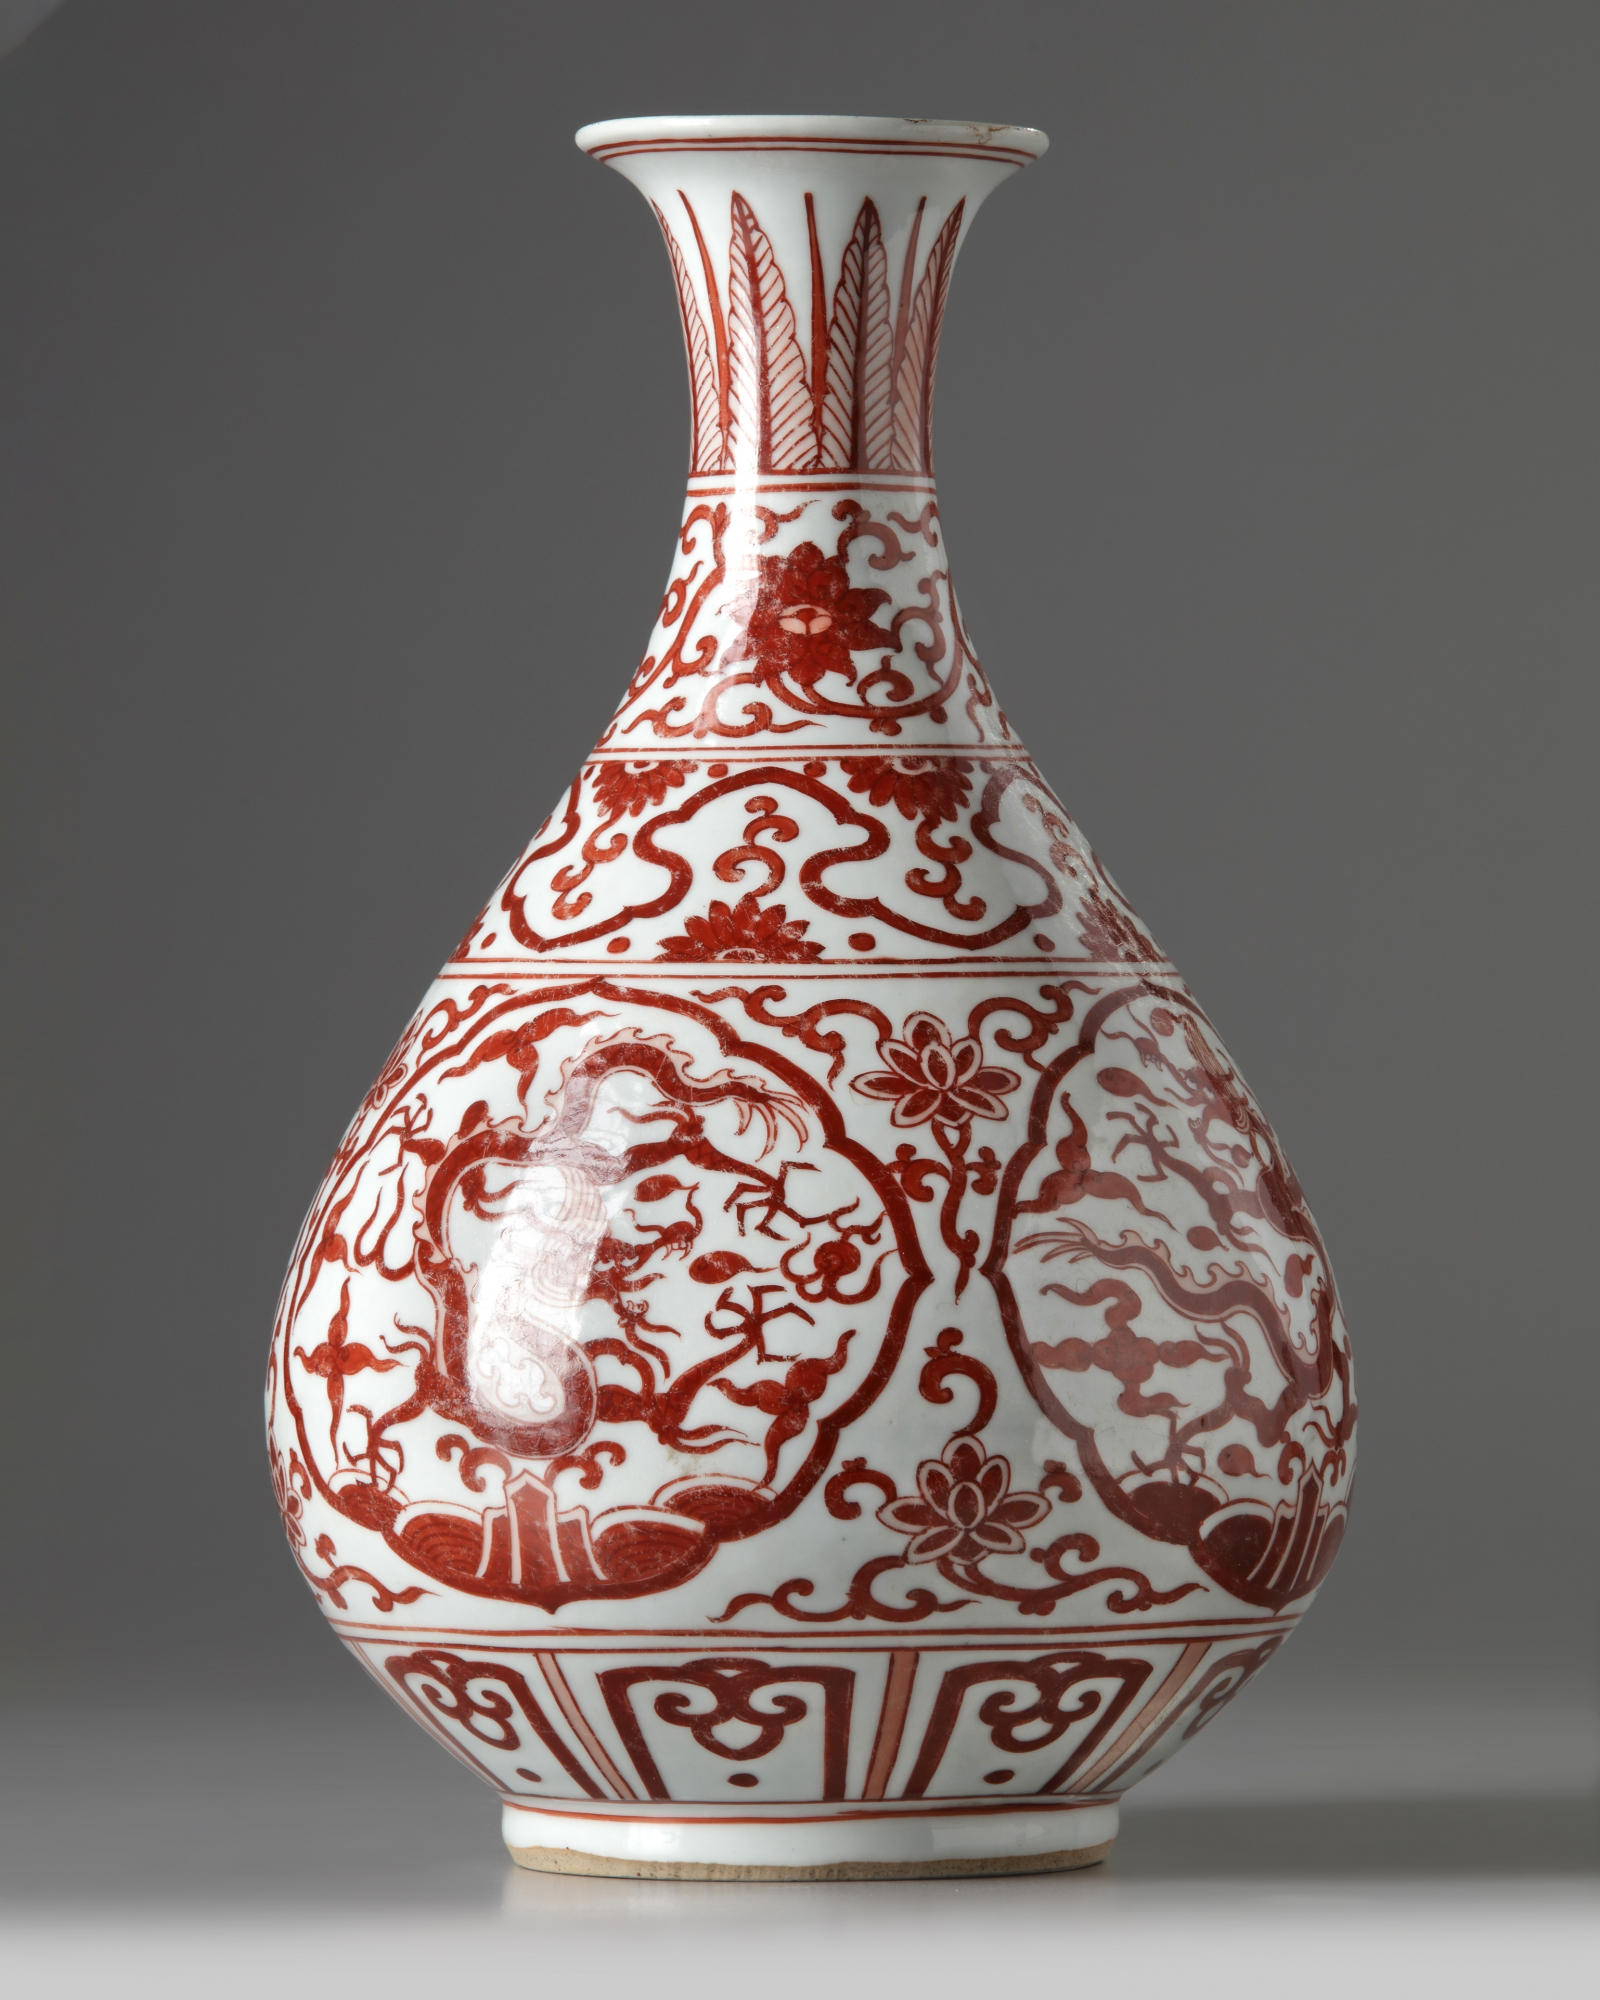 Lot 15 - A Chinese iron-red-decorated pear-shaped vase, yuhuchunping